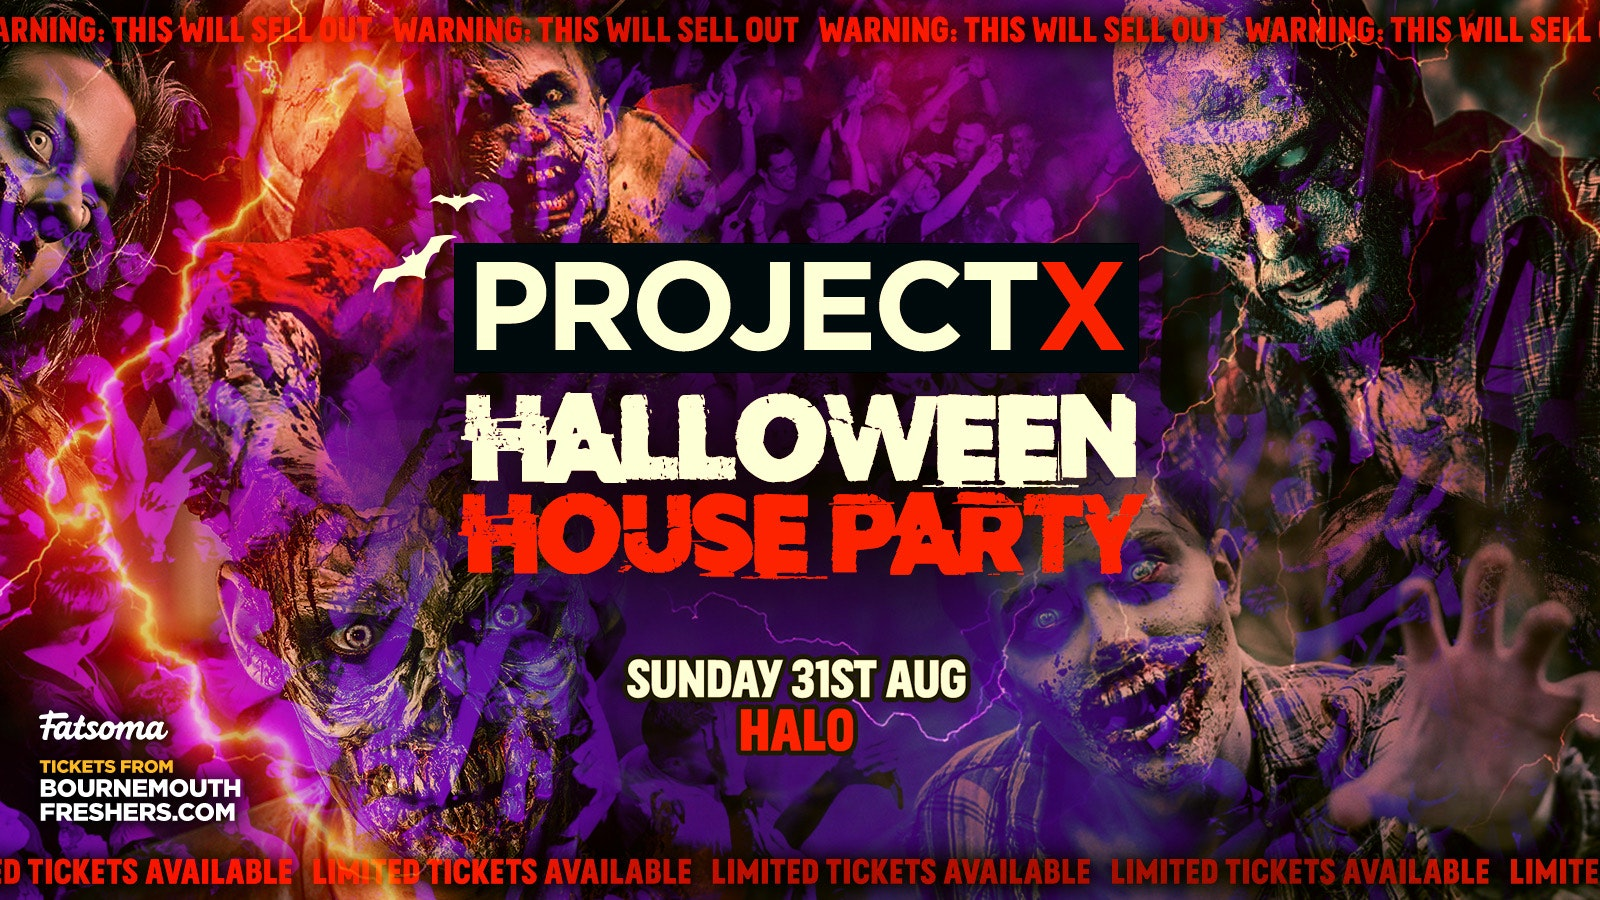 Project X Halloween House Party 2021 – The BIGGEST American Themed House Party This Year   Bournemouth Freshers 2021